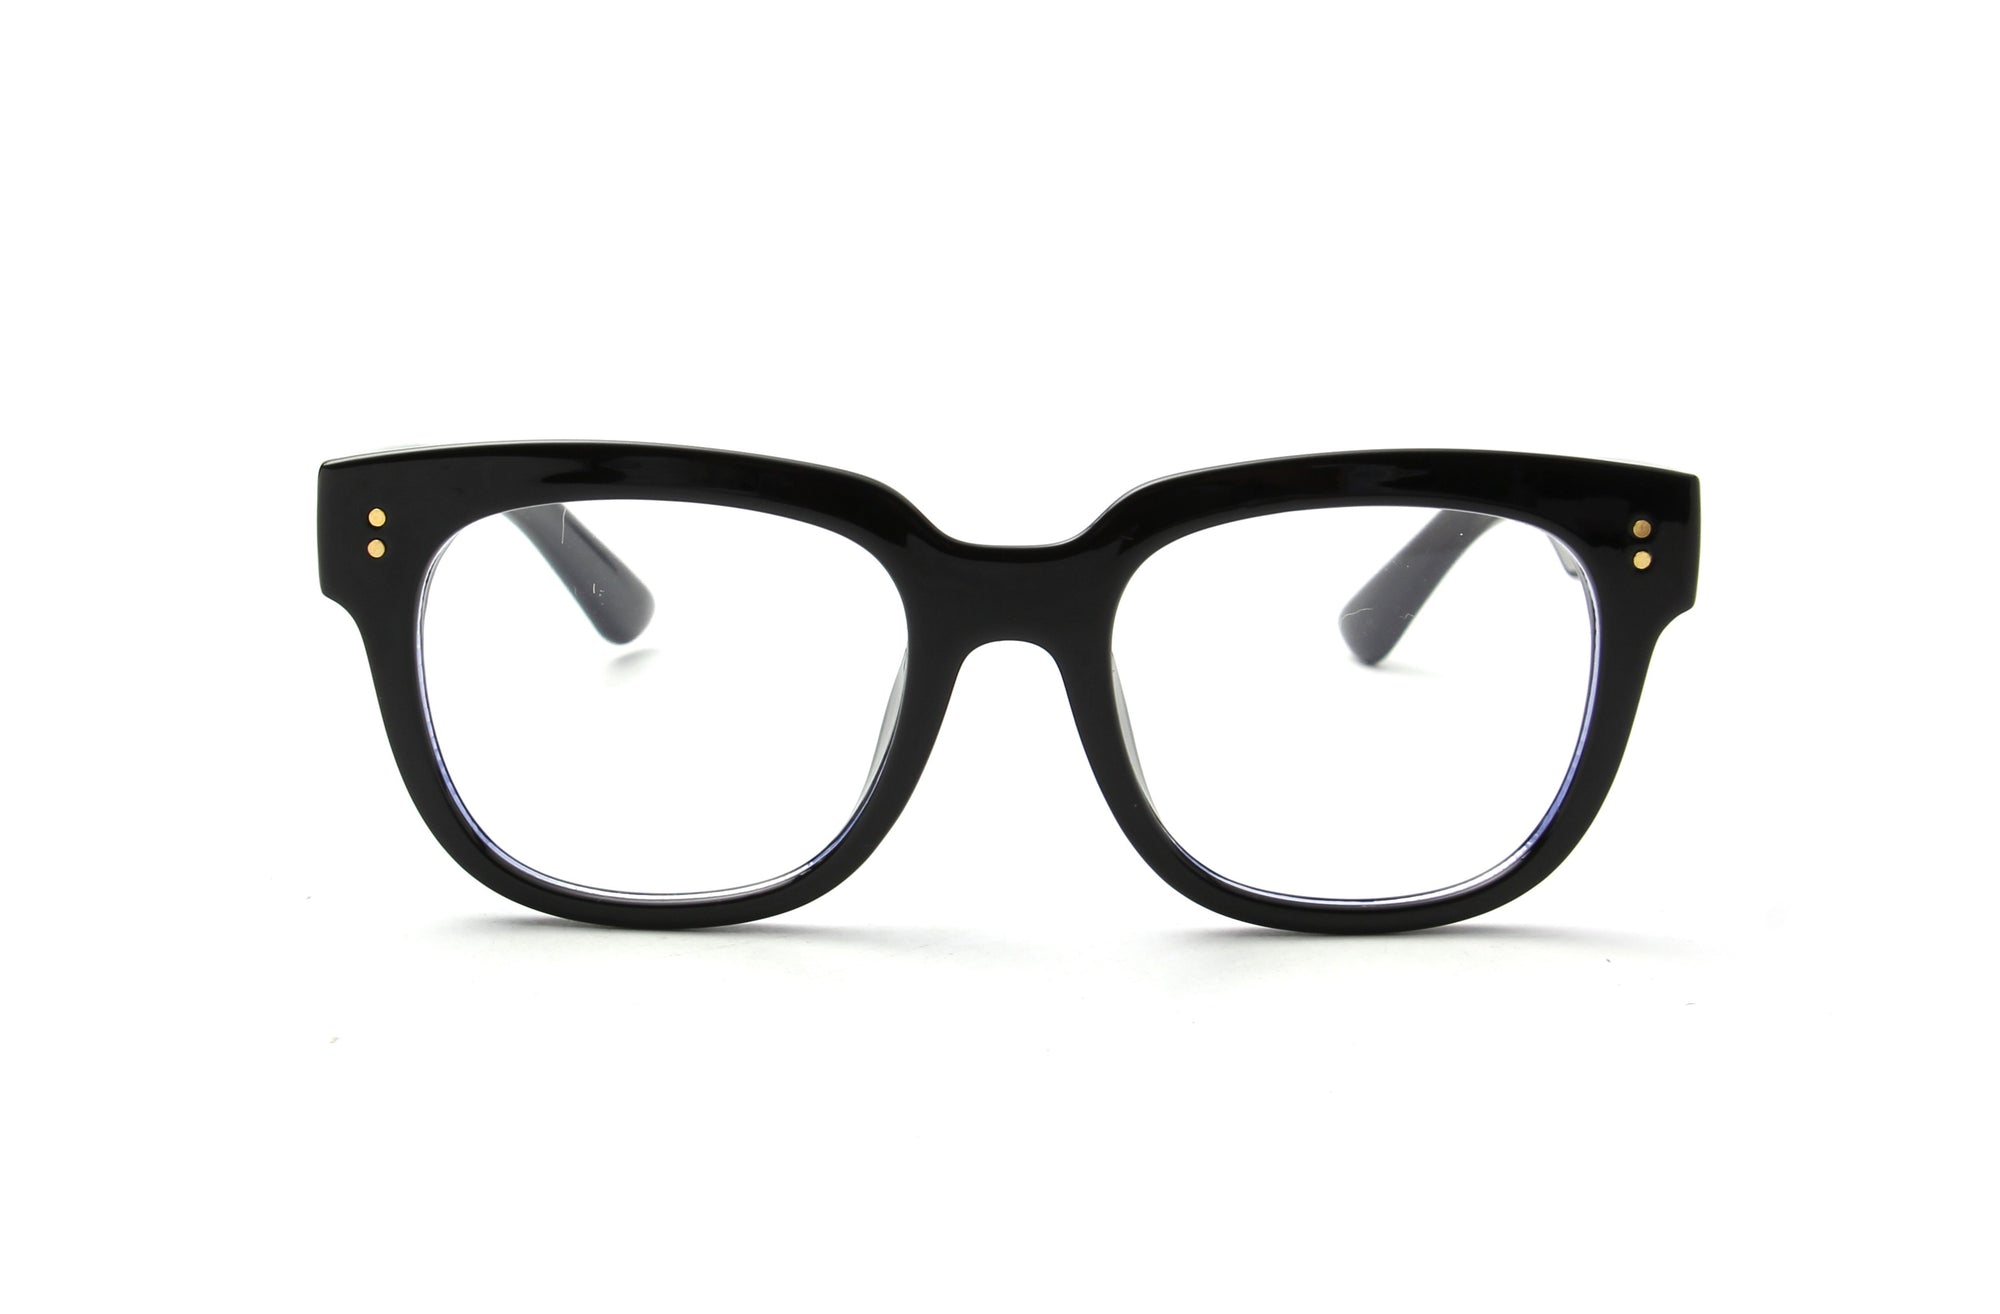 S1148 - Classic Round Blue Light Blocker Eyeglasses - Iris Fashion Inc.